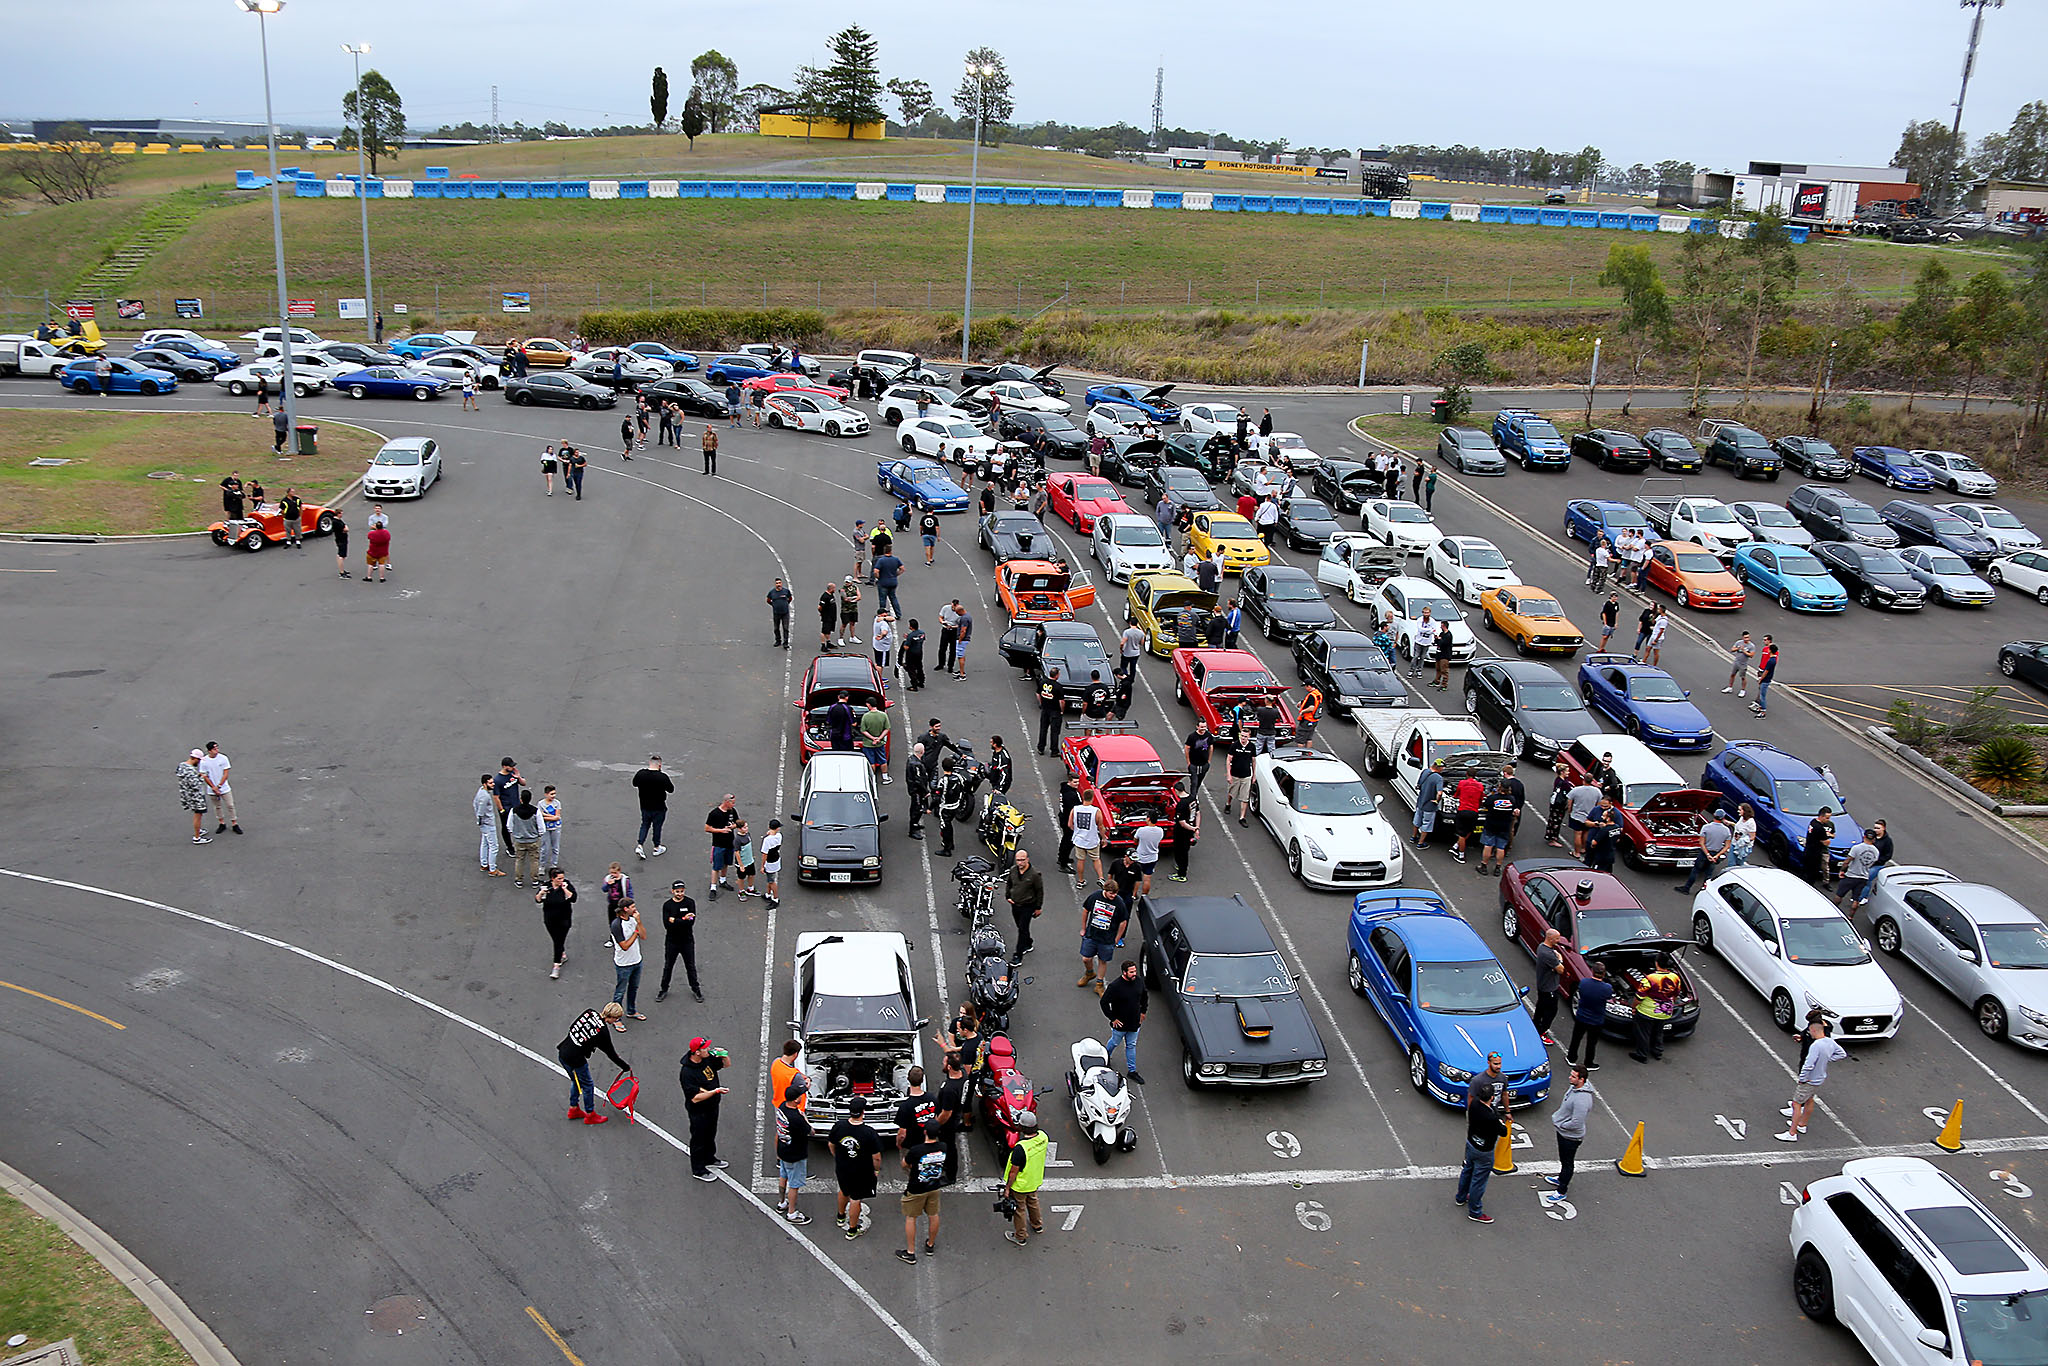 Sydney Dragway track aerial view of people and cars